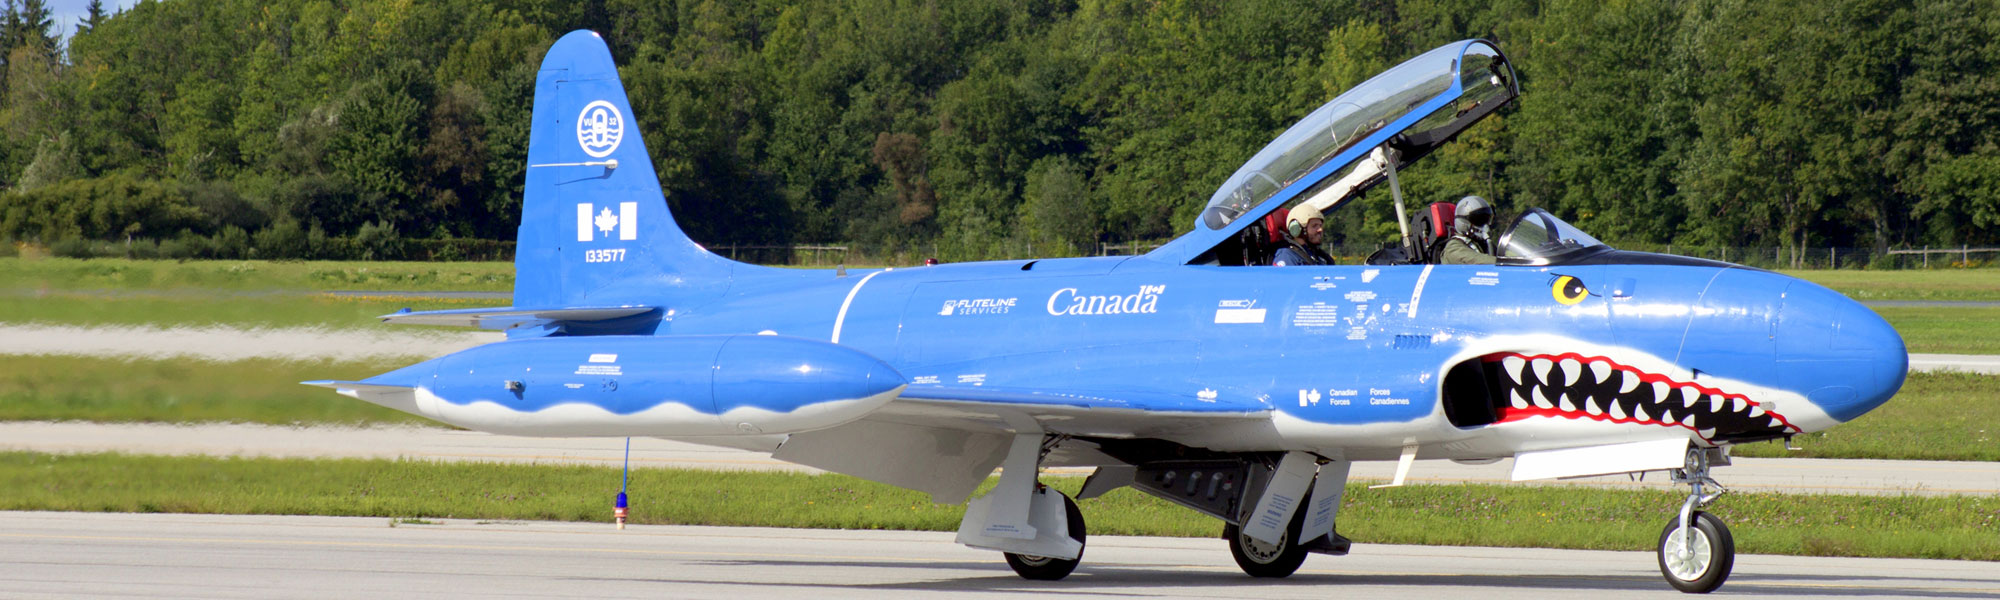 T-33 Trainingsjet aus Kanada